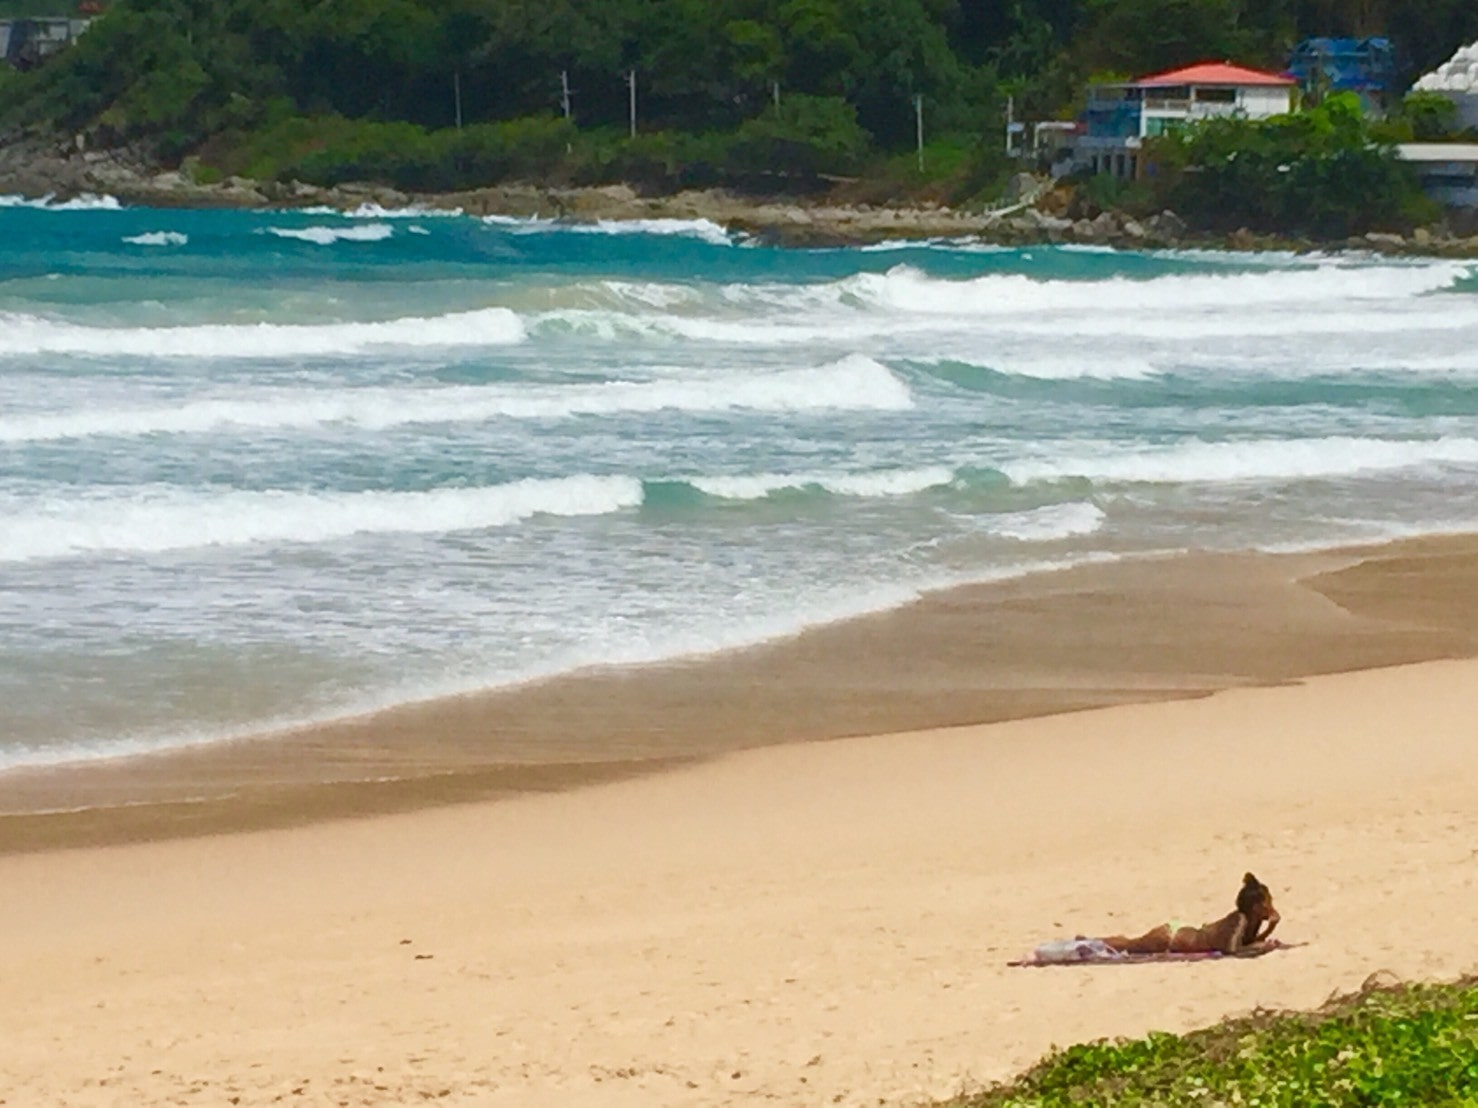 Should Phuket's beaches be closed until the crocodile is captured? | The Thaiger